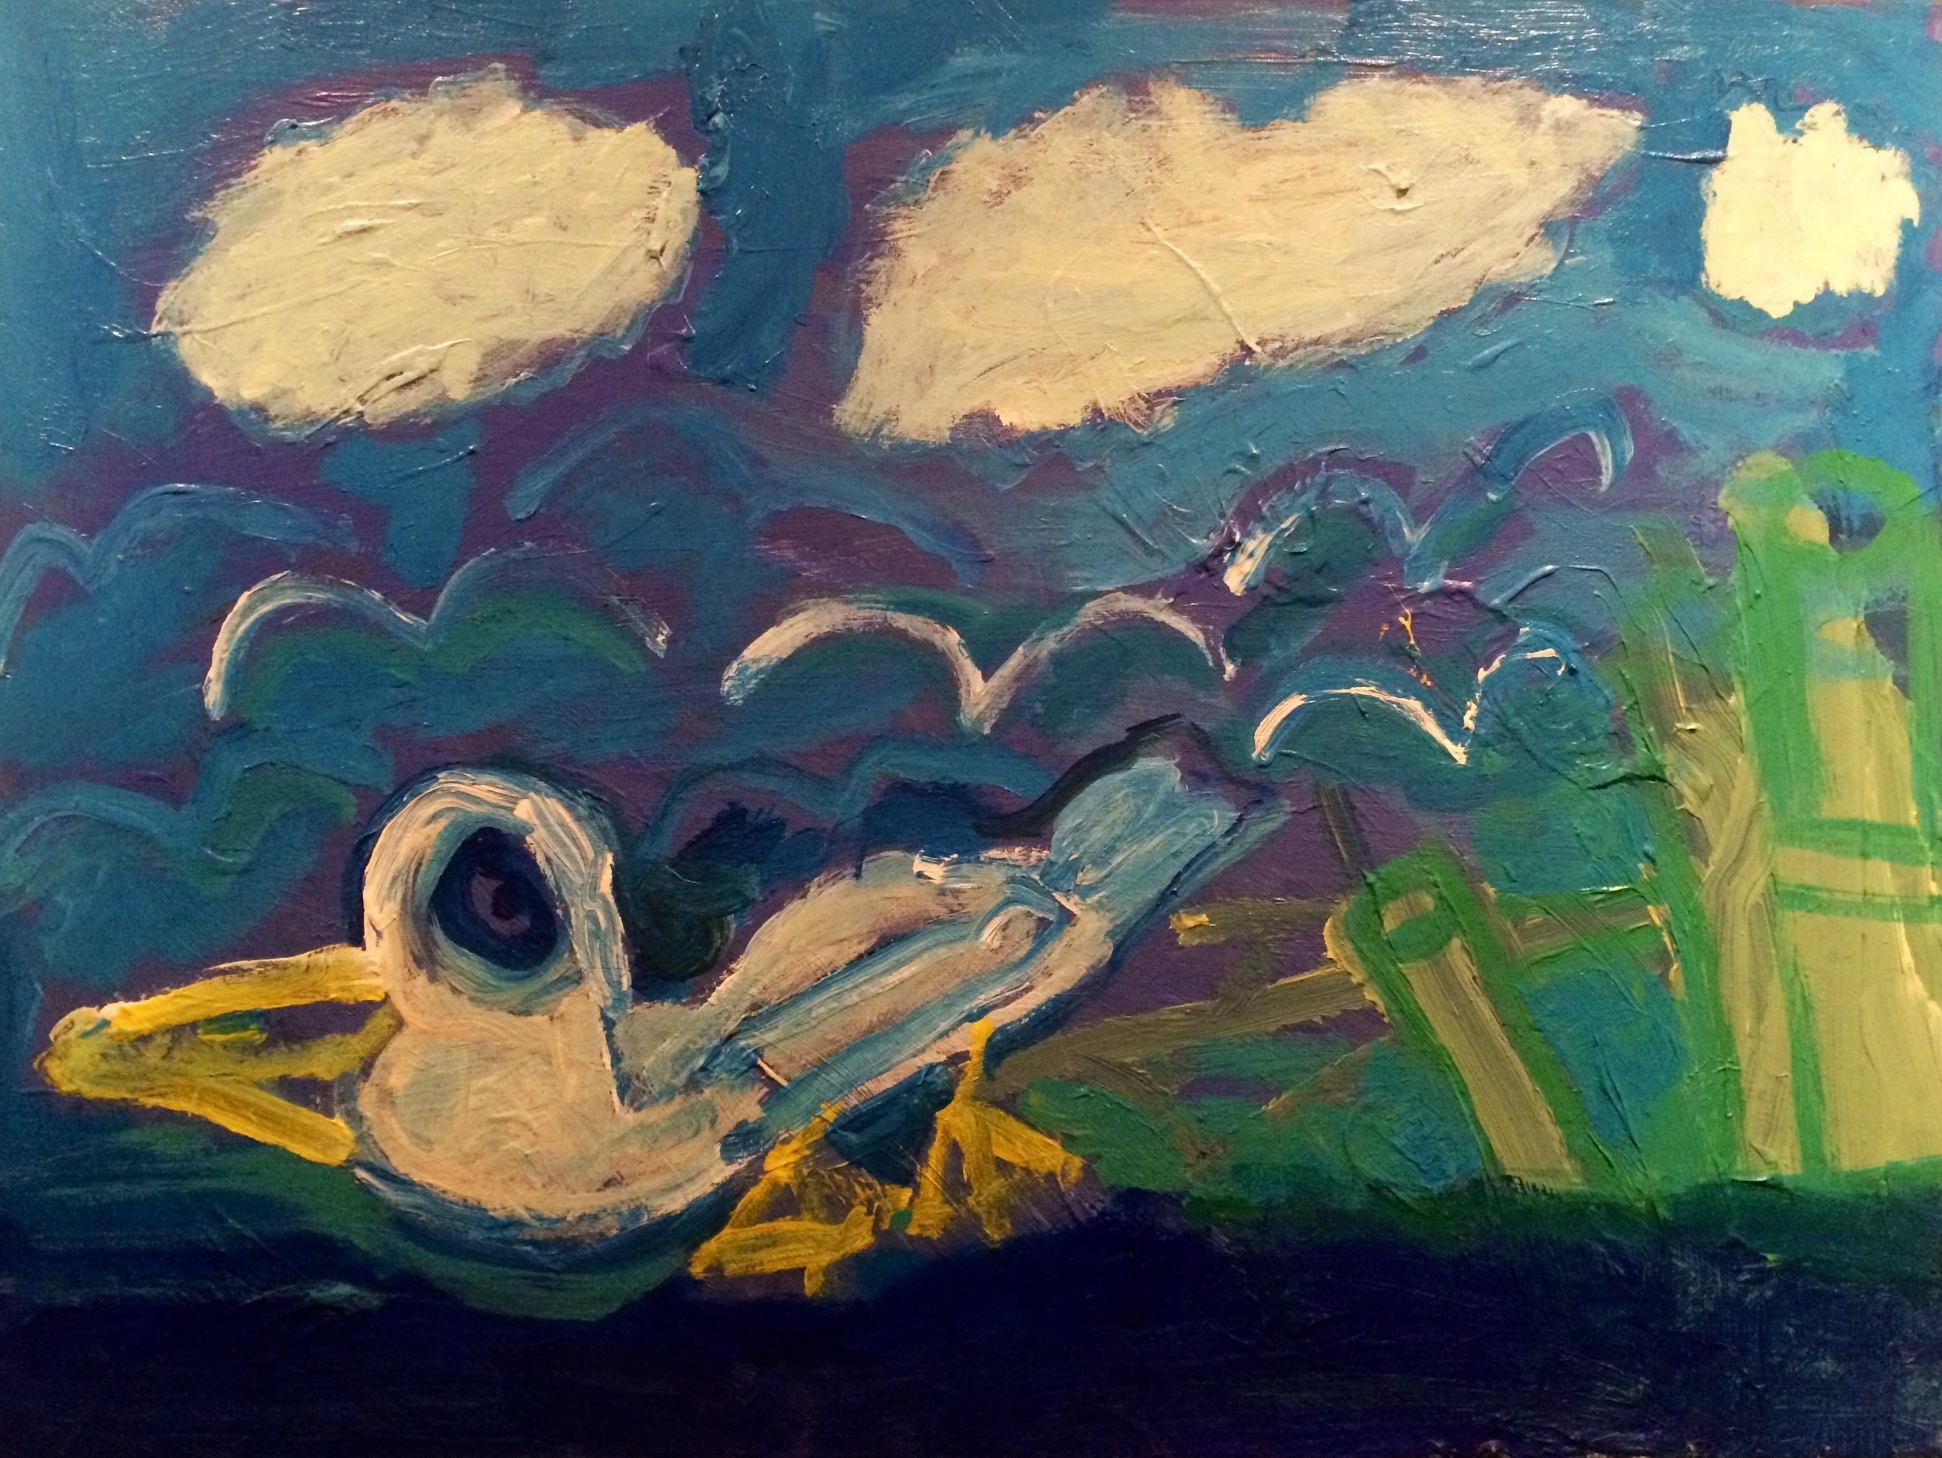 Sea Gull - Lisa Pham